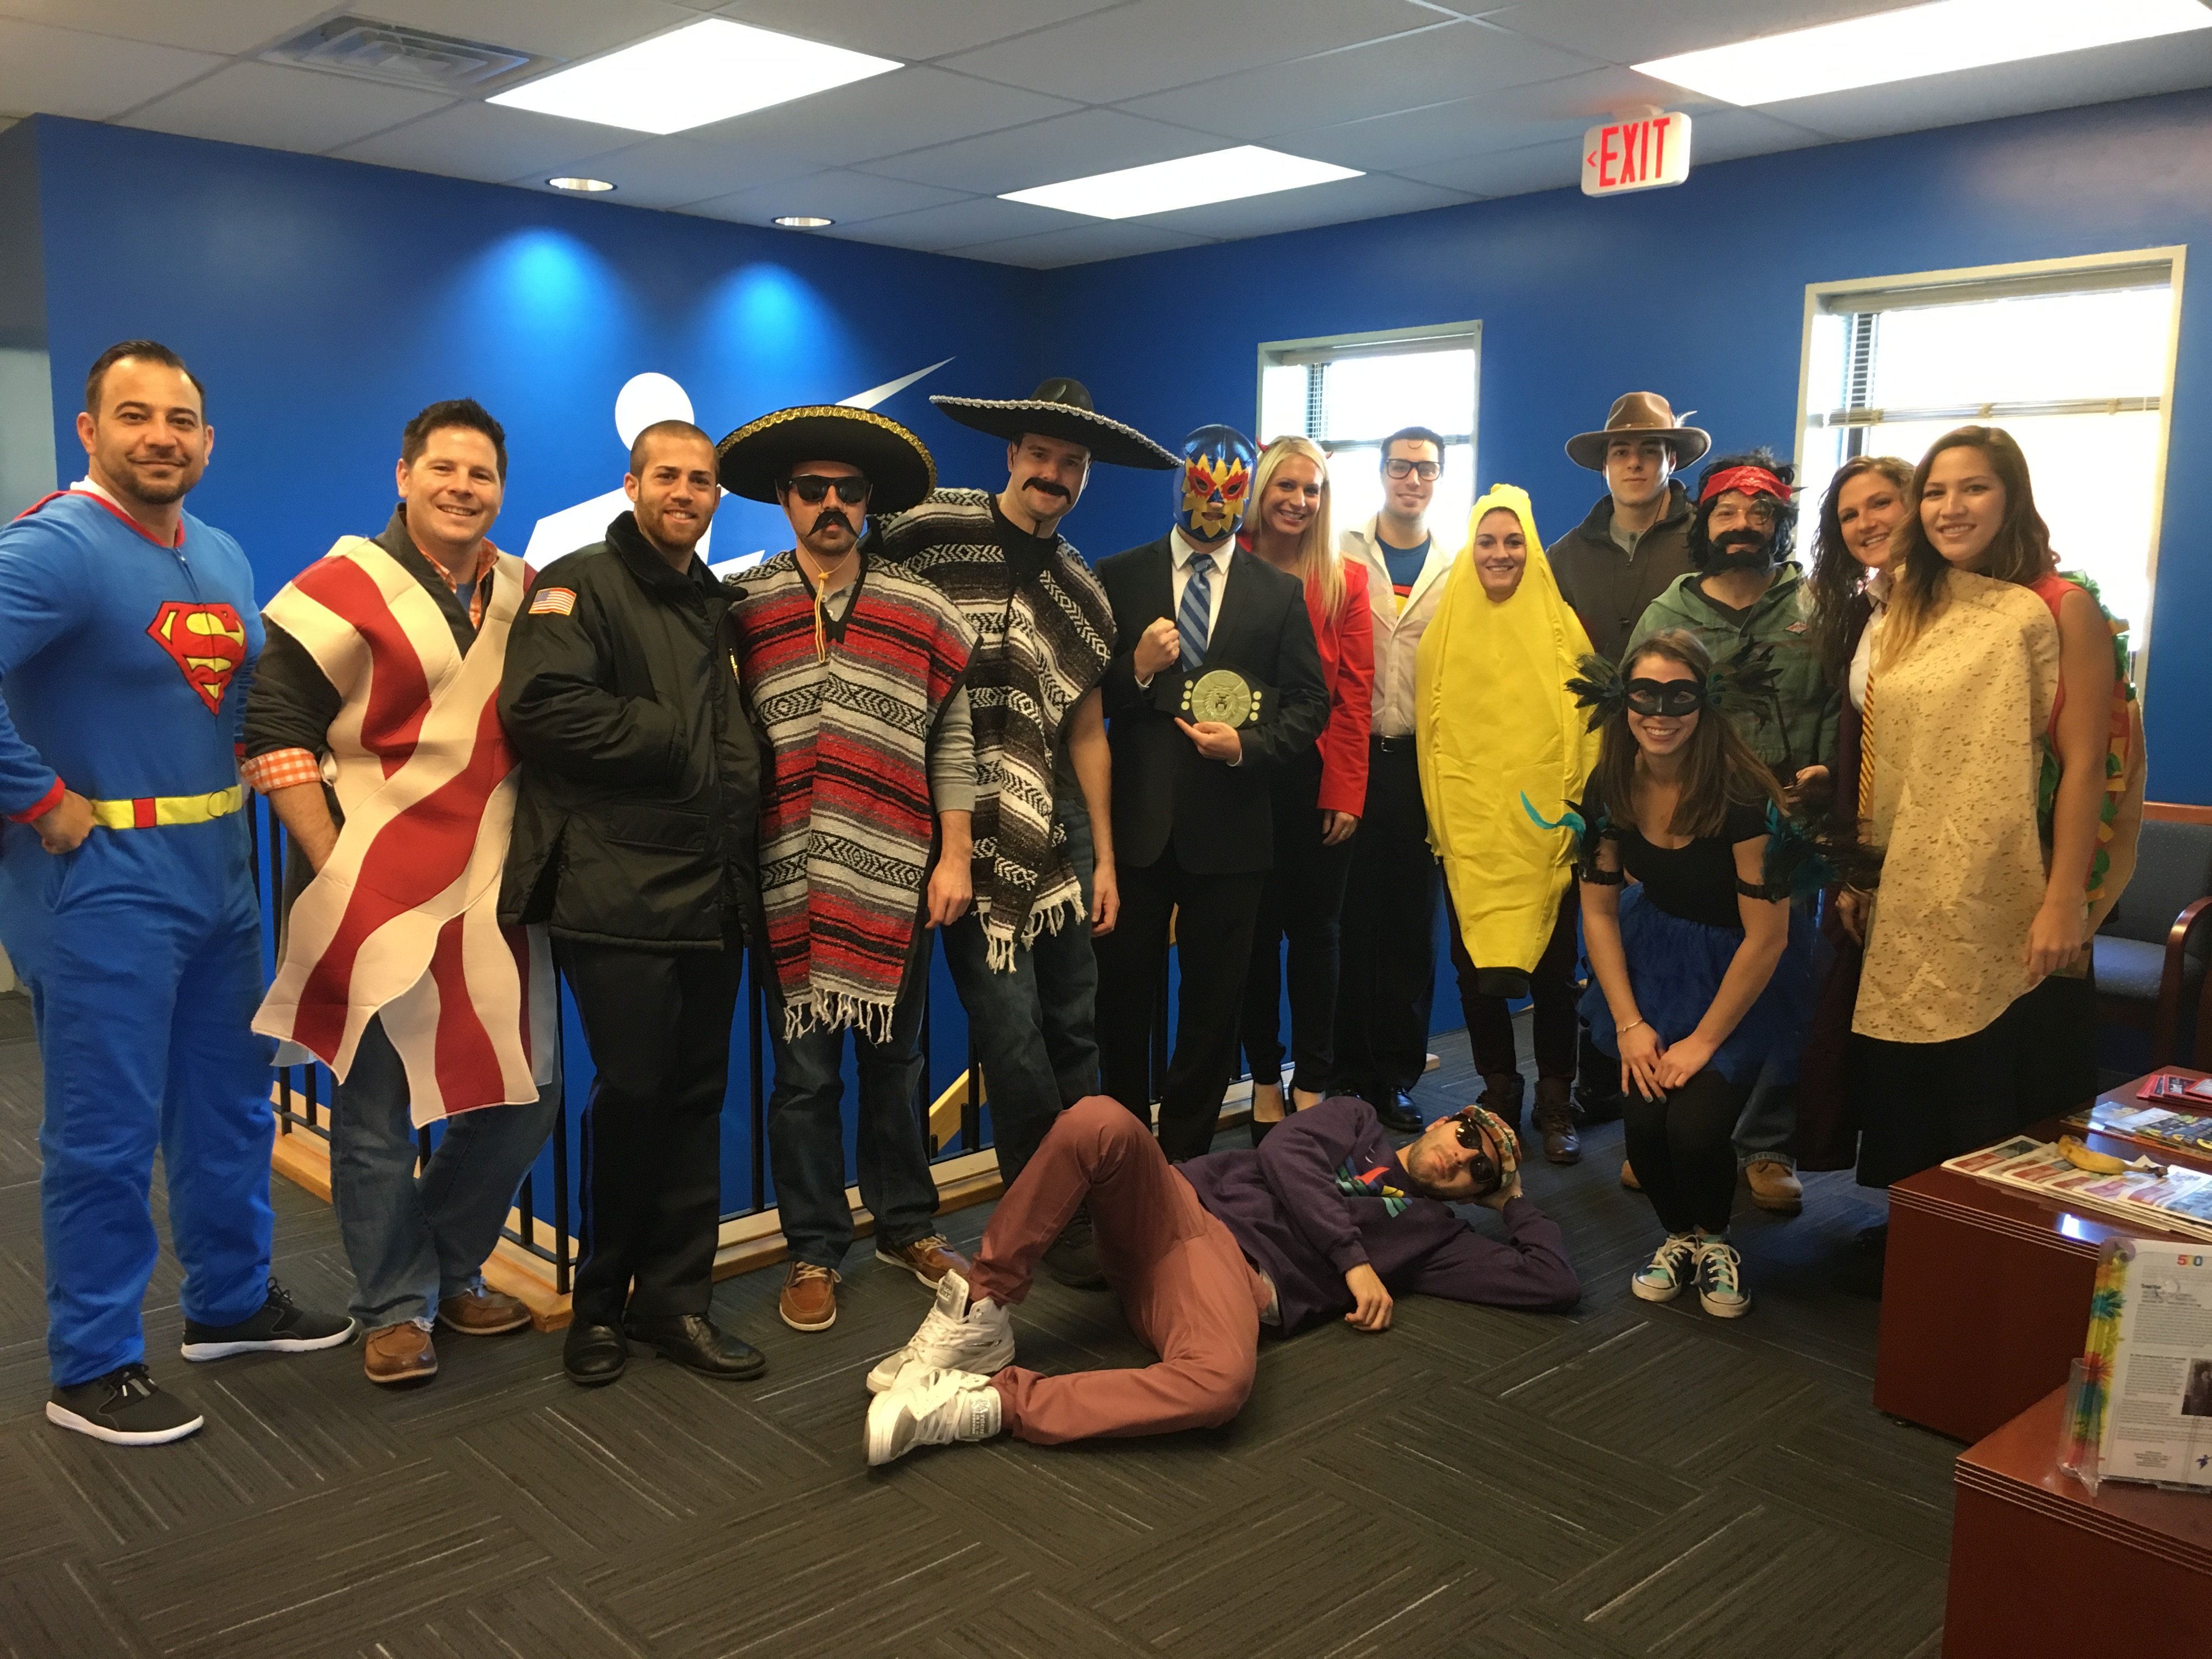 Treeline, Inc. showing some Halloween spirit at a meeting